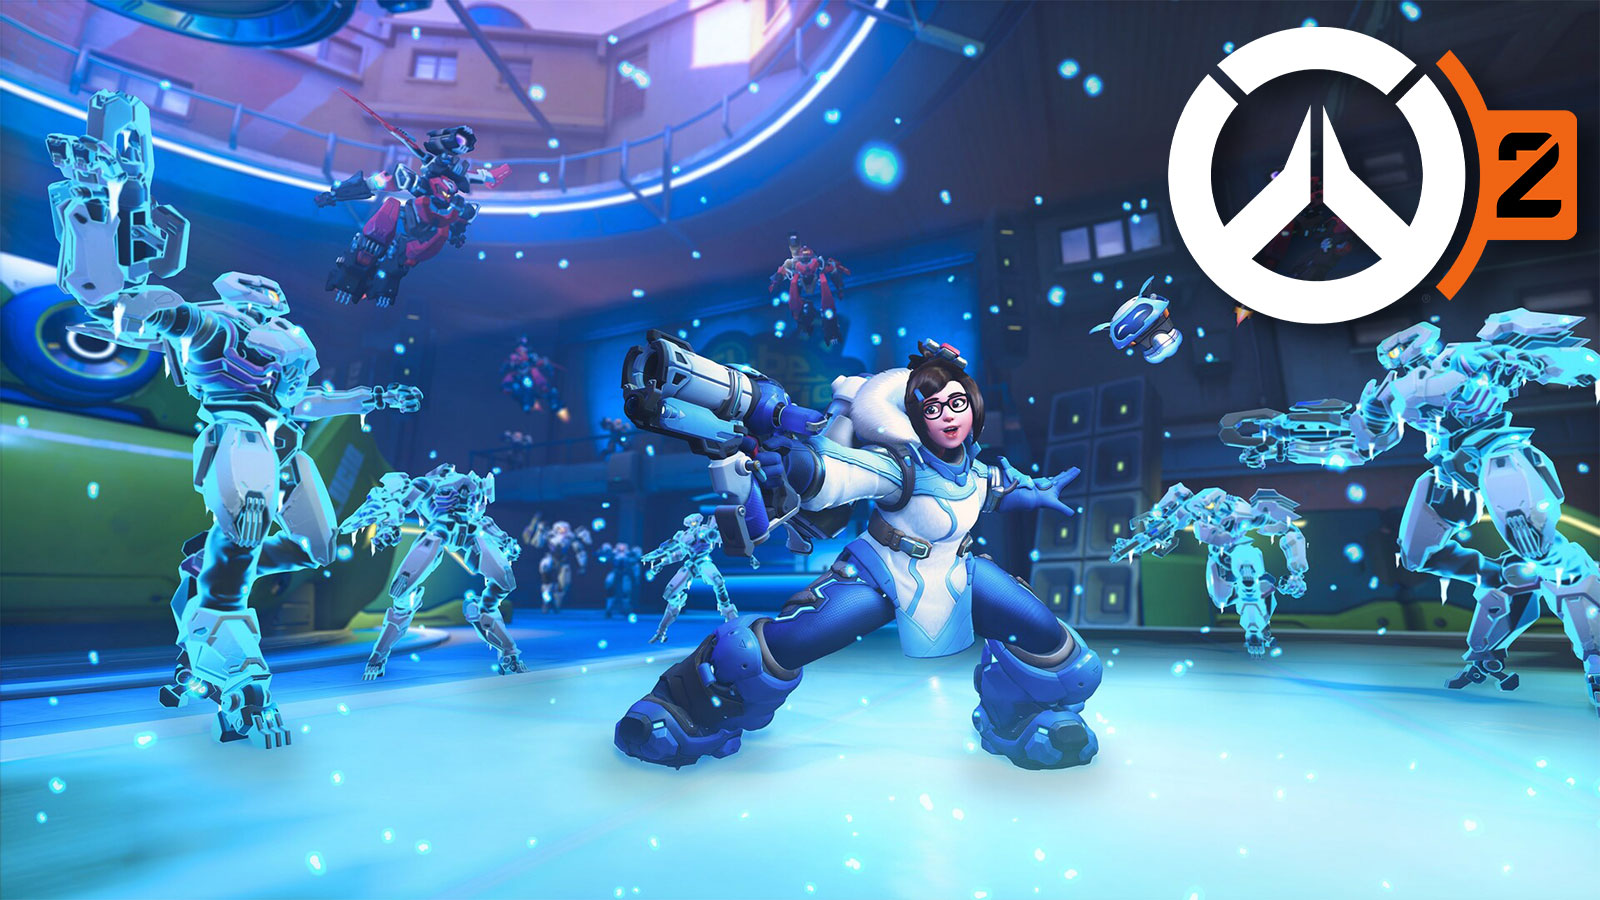 Mei in Overwatch 2